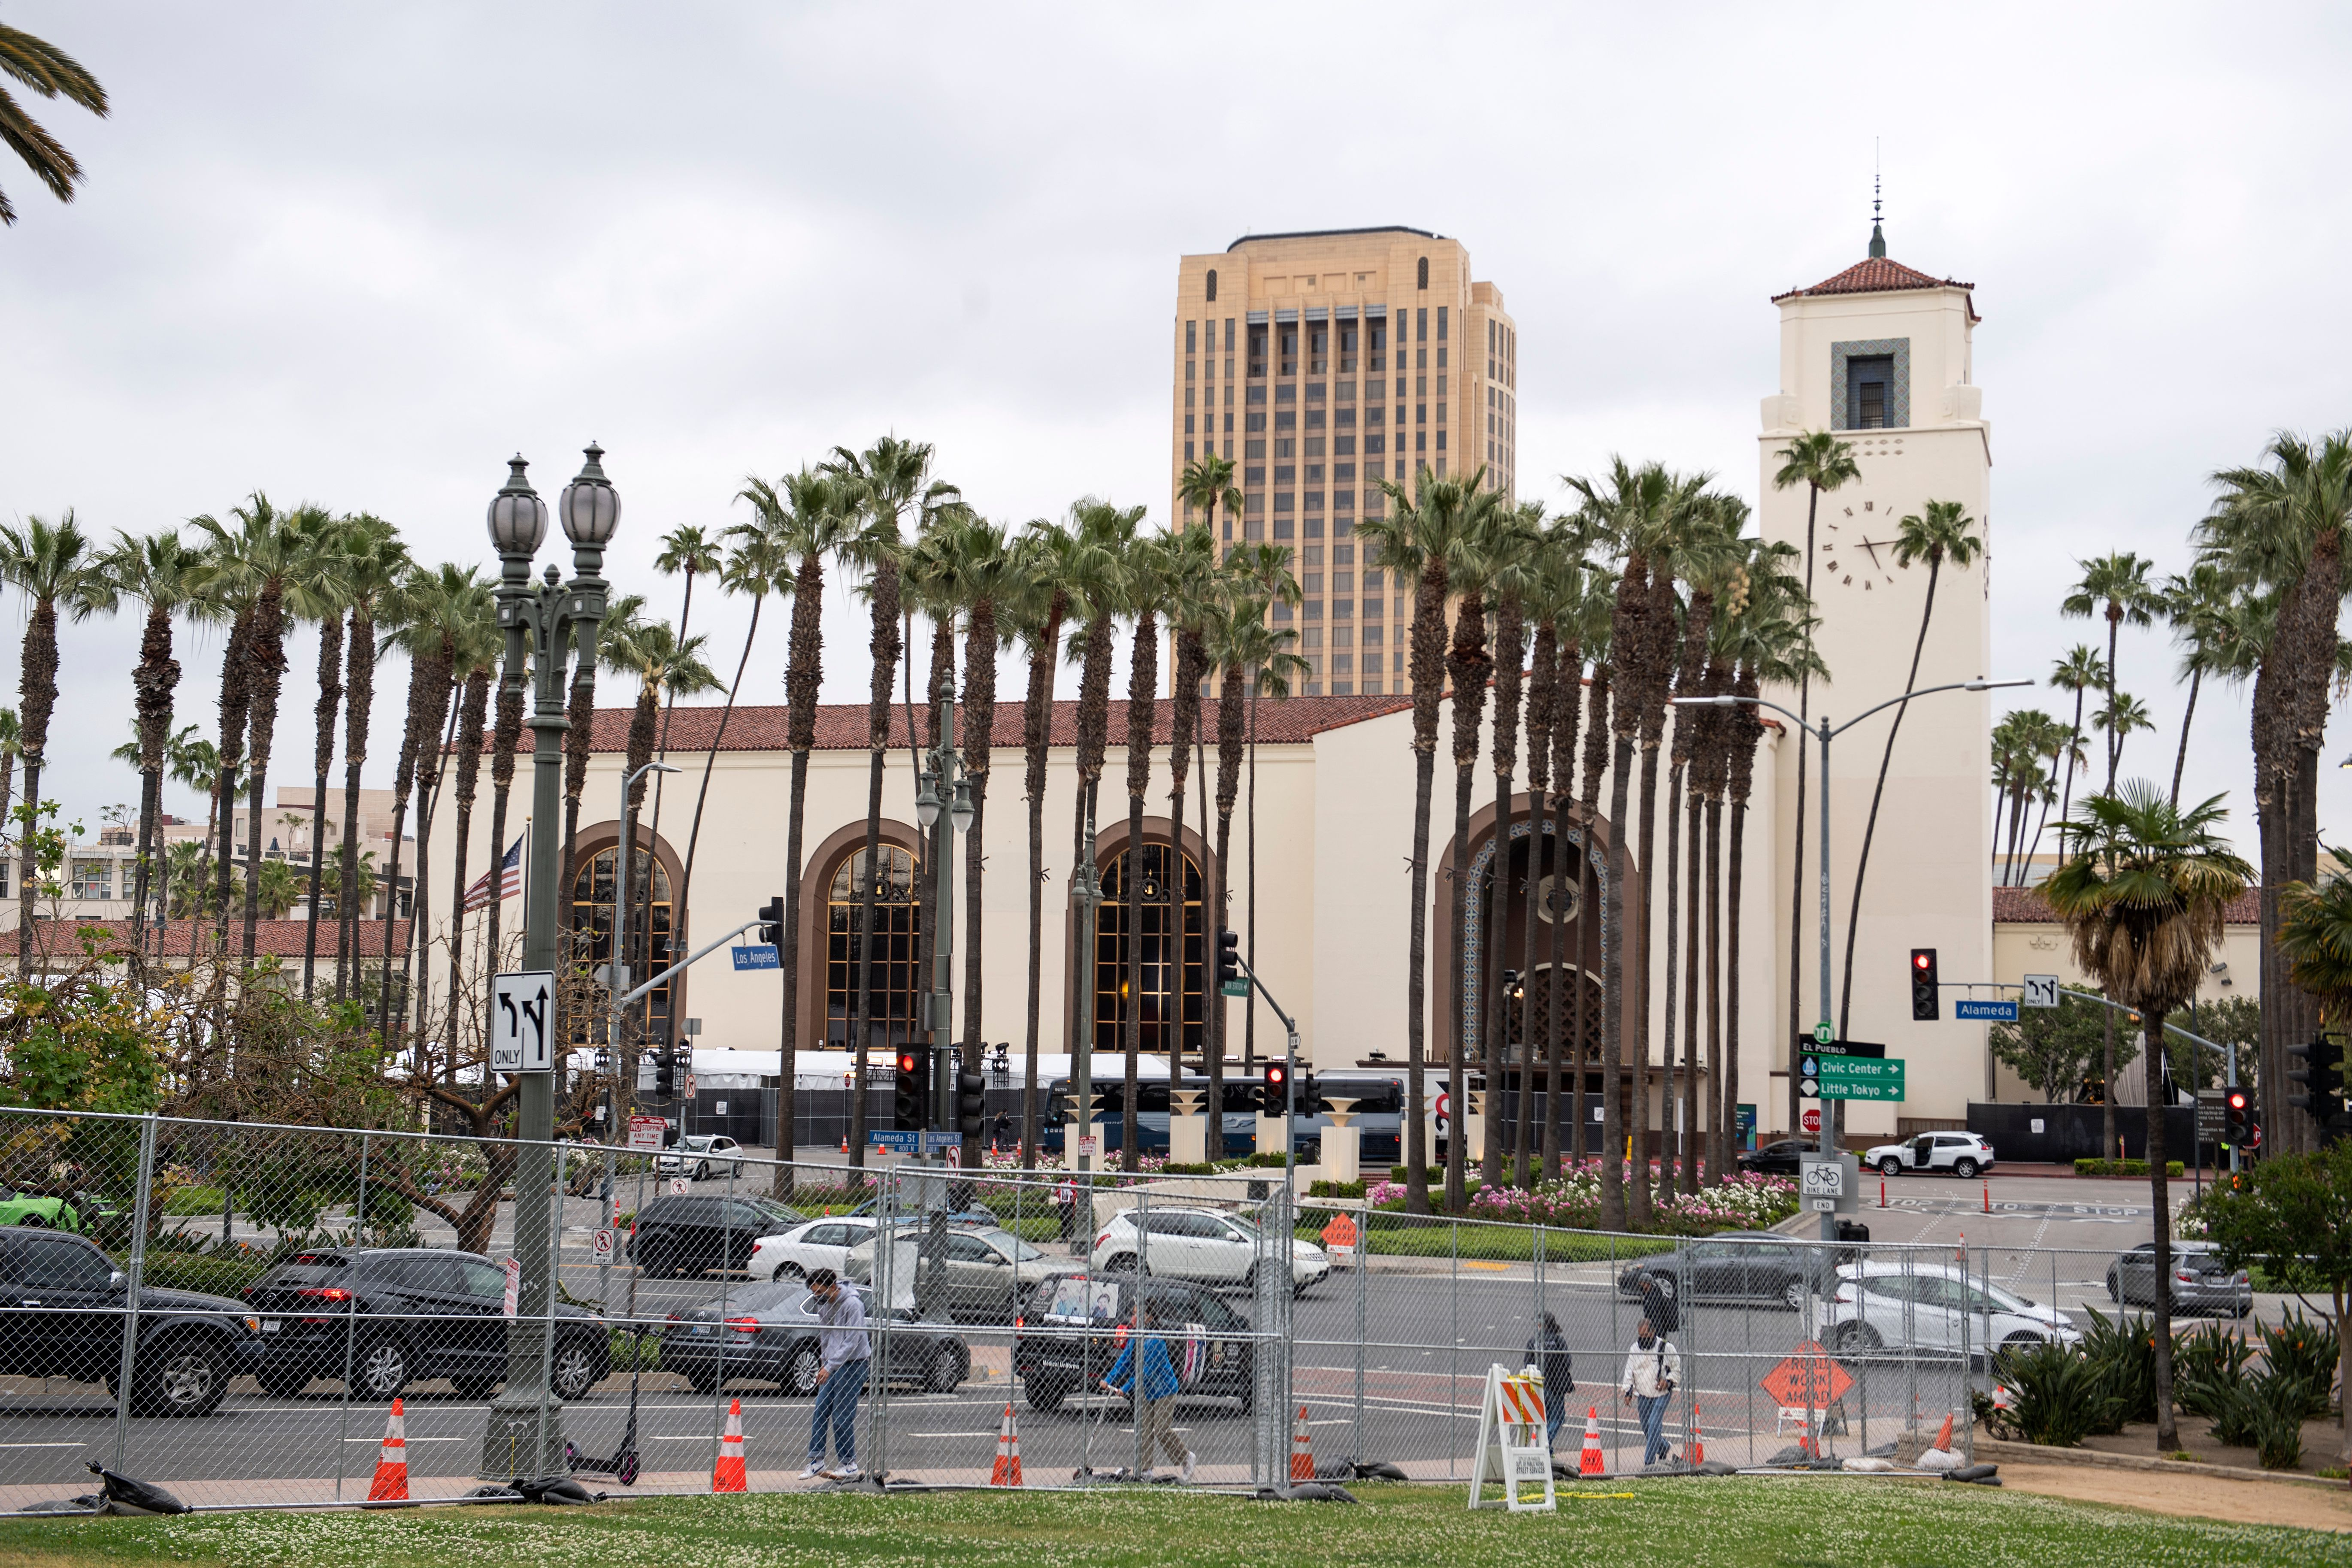 A general view shows Union Station during preparations for the 93rd Academy Awards in Los Angeles, California on April 23, 2021.